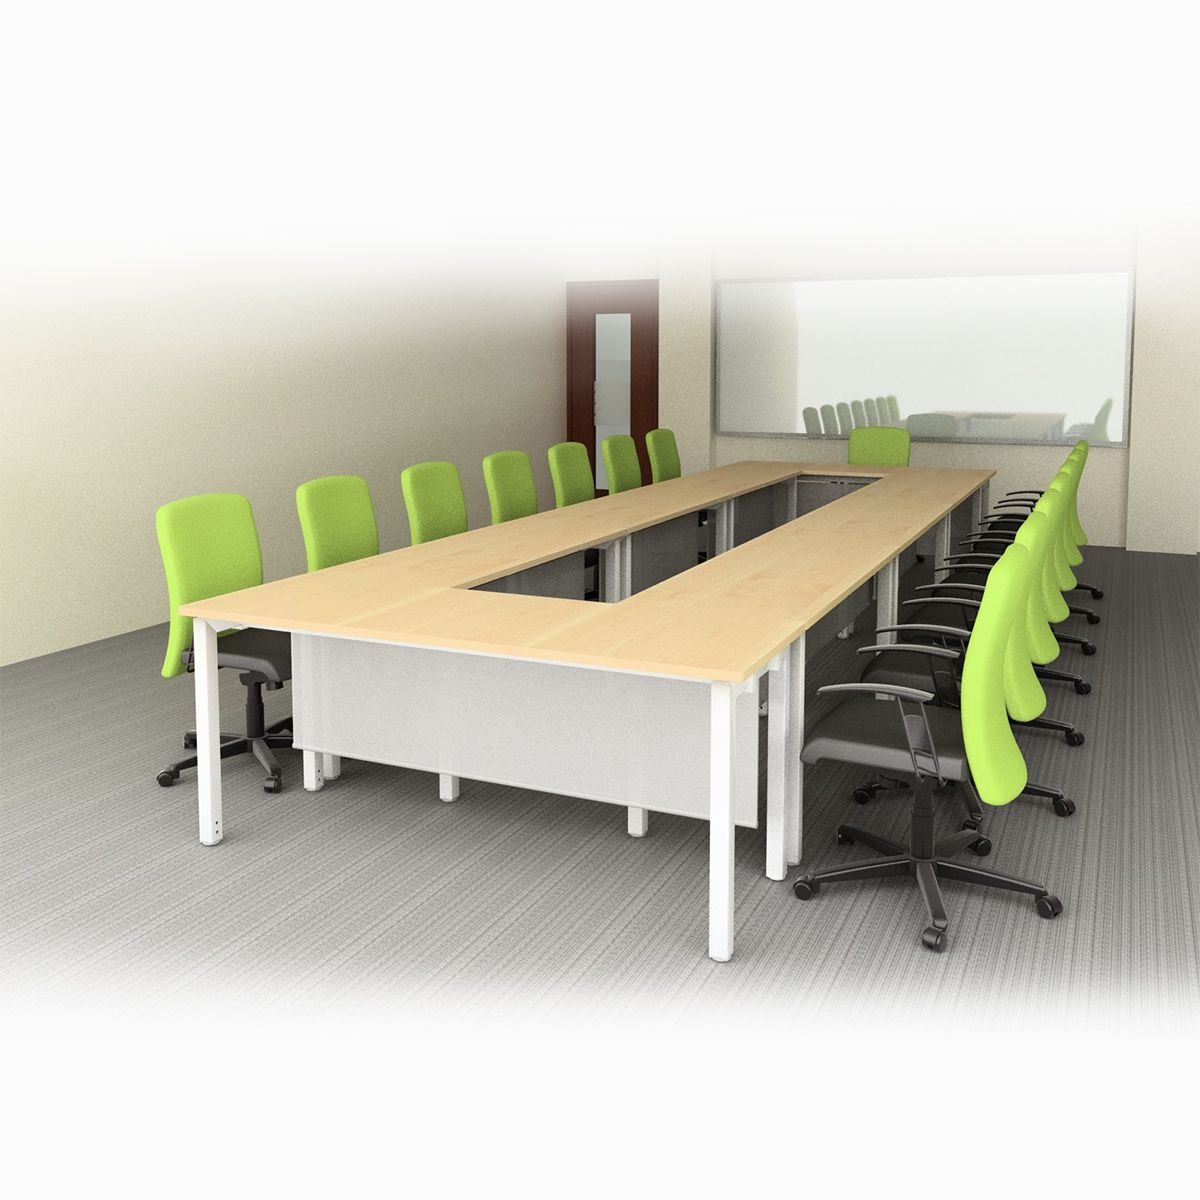 office conference table design. Exellent Office Concept Selection Select The Designstyleconcept Of Office Meeting Table   Intended Office Conference Table Design